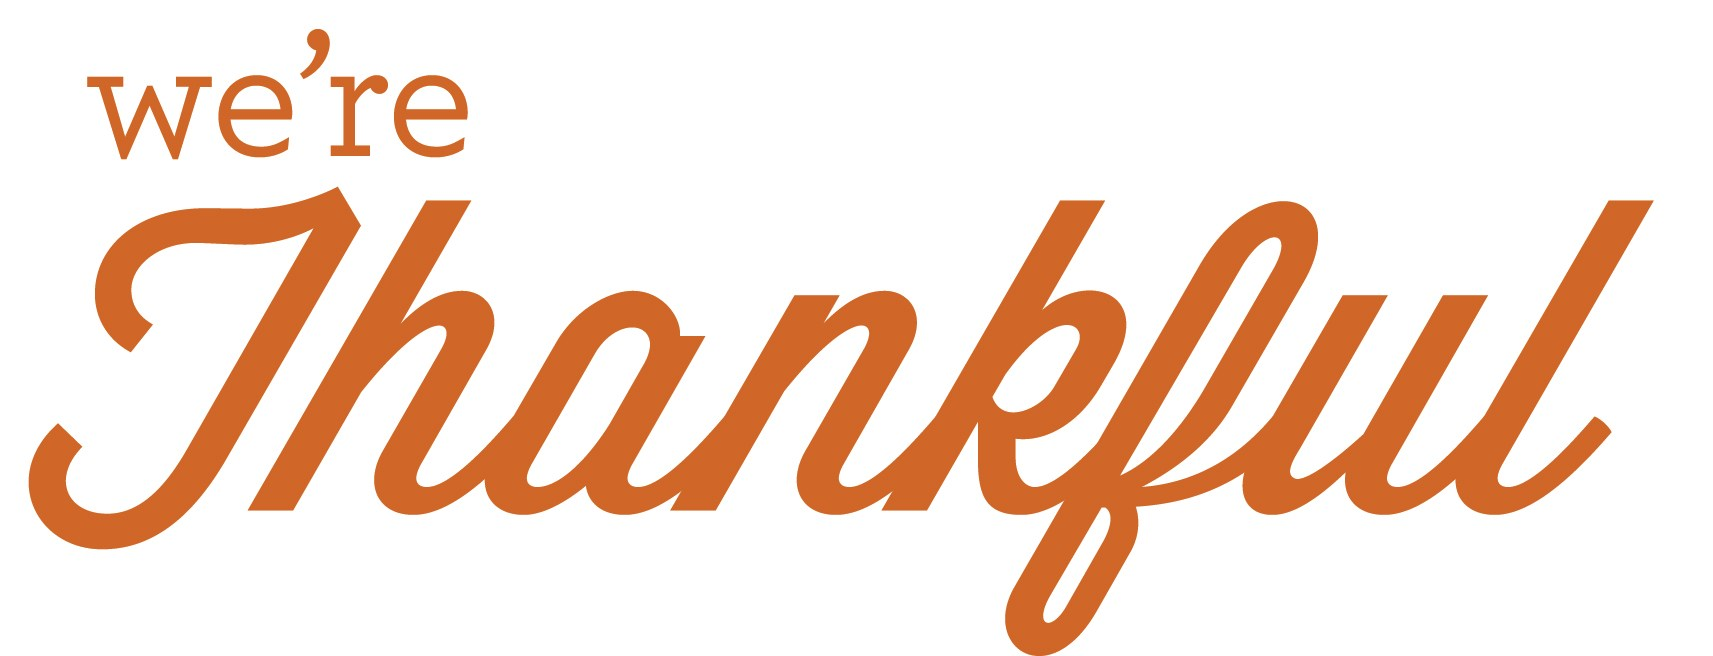 Thankful clipart free 2 » Clipart Portal.